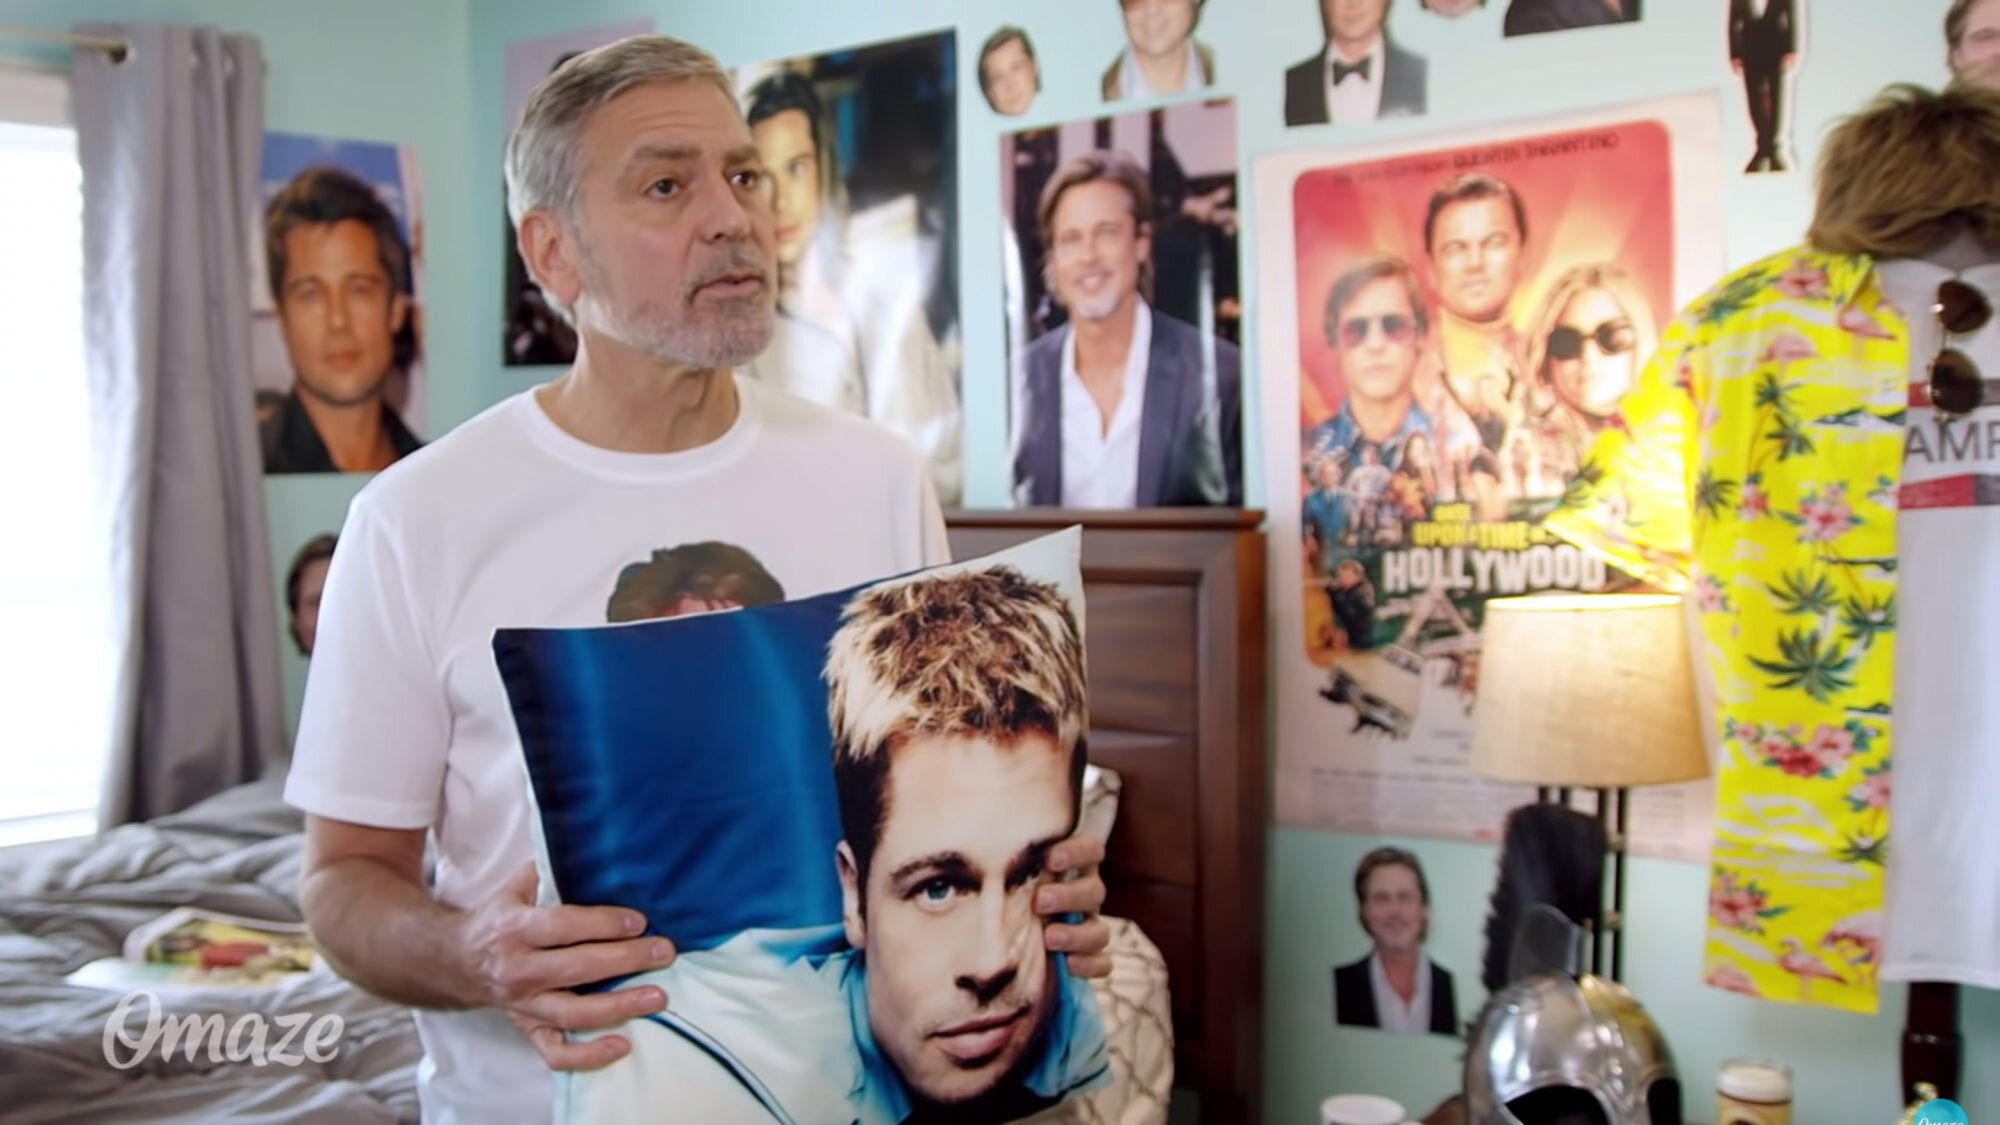 George Clooney Is Really Obsessed with Brad Pitt in Hilarious Charity Video: 'He's So Good!' Image?url=https%3A%2F%2Fstatic.onecms.io%2Fwp-content%2Fuploads%2Fsites%2F20%2F2021%2F05%2F05%2Fgeorge-clooney-2000